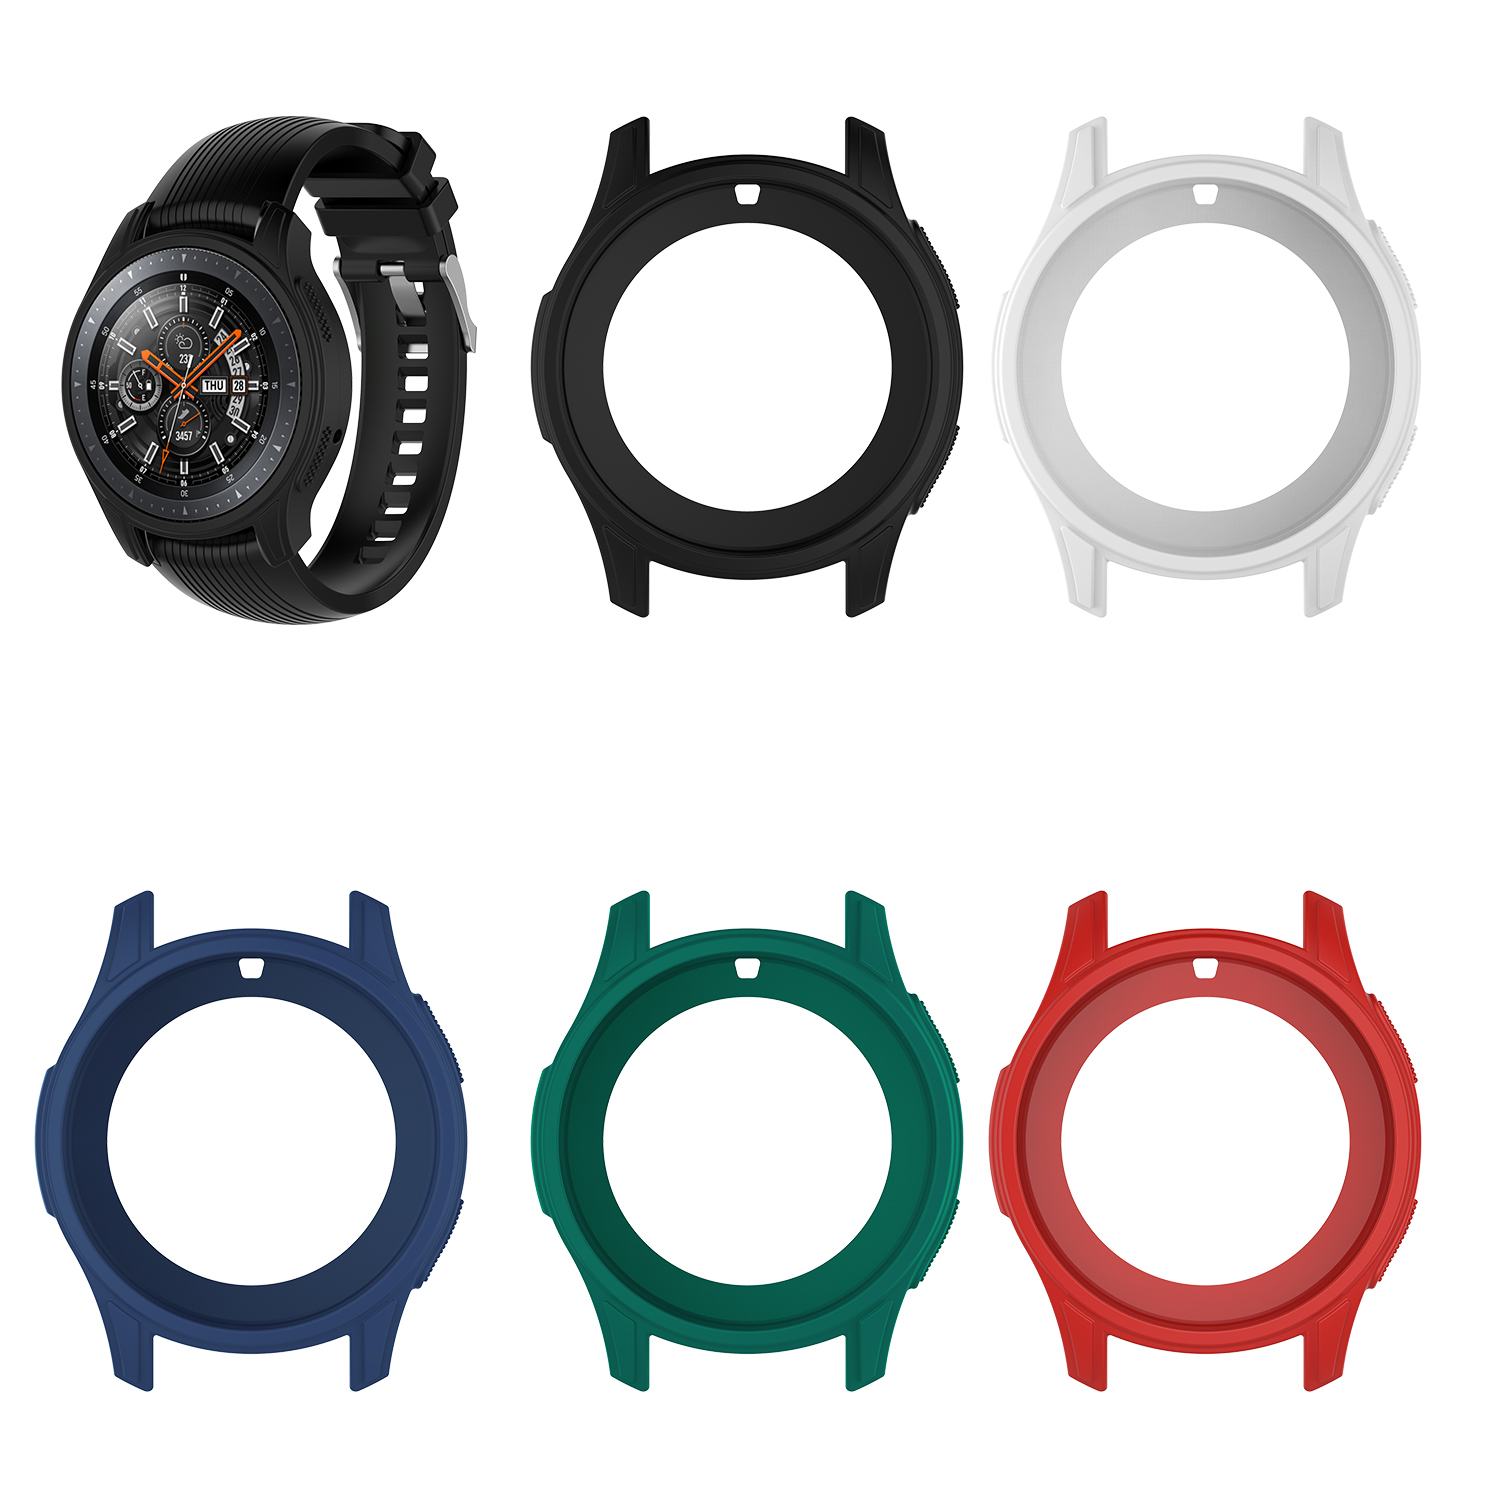 5 Colors Silicone Protective Case For Samsung Gear S3 Frontier Cover Screen Protector Smartwatch Case For Galaxy Watch 46MM-in Smart Accessories from Consumer Electronics